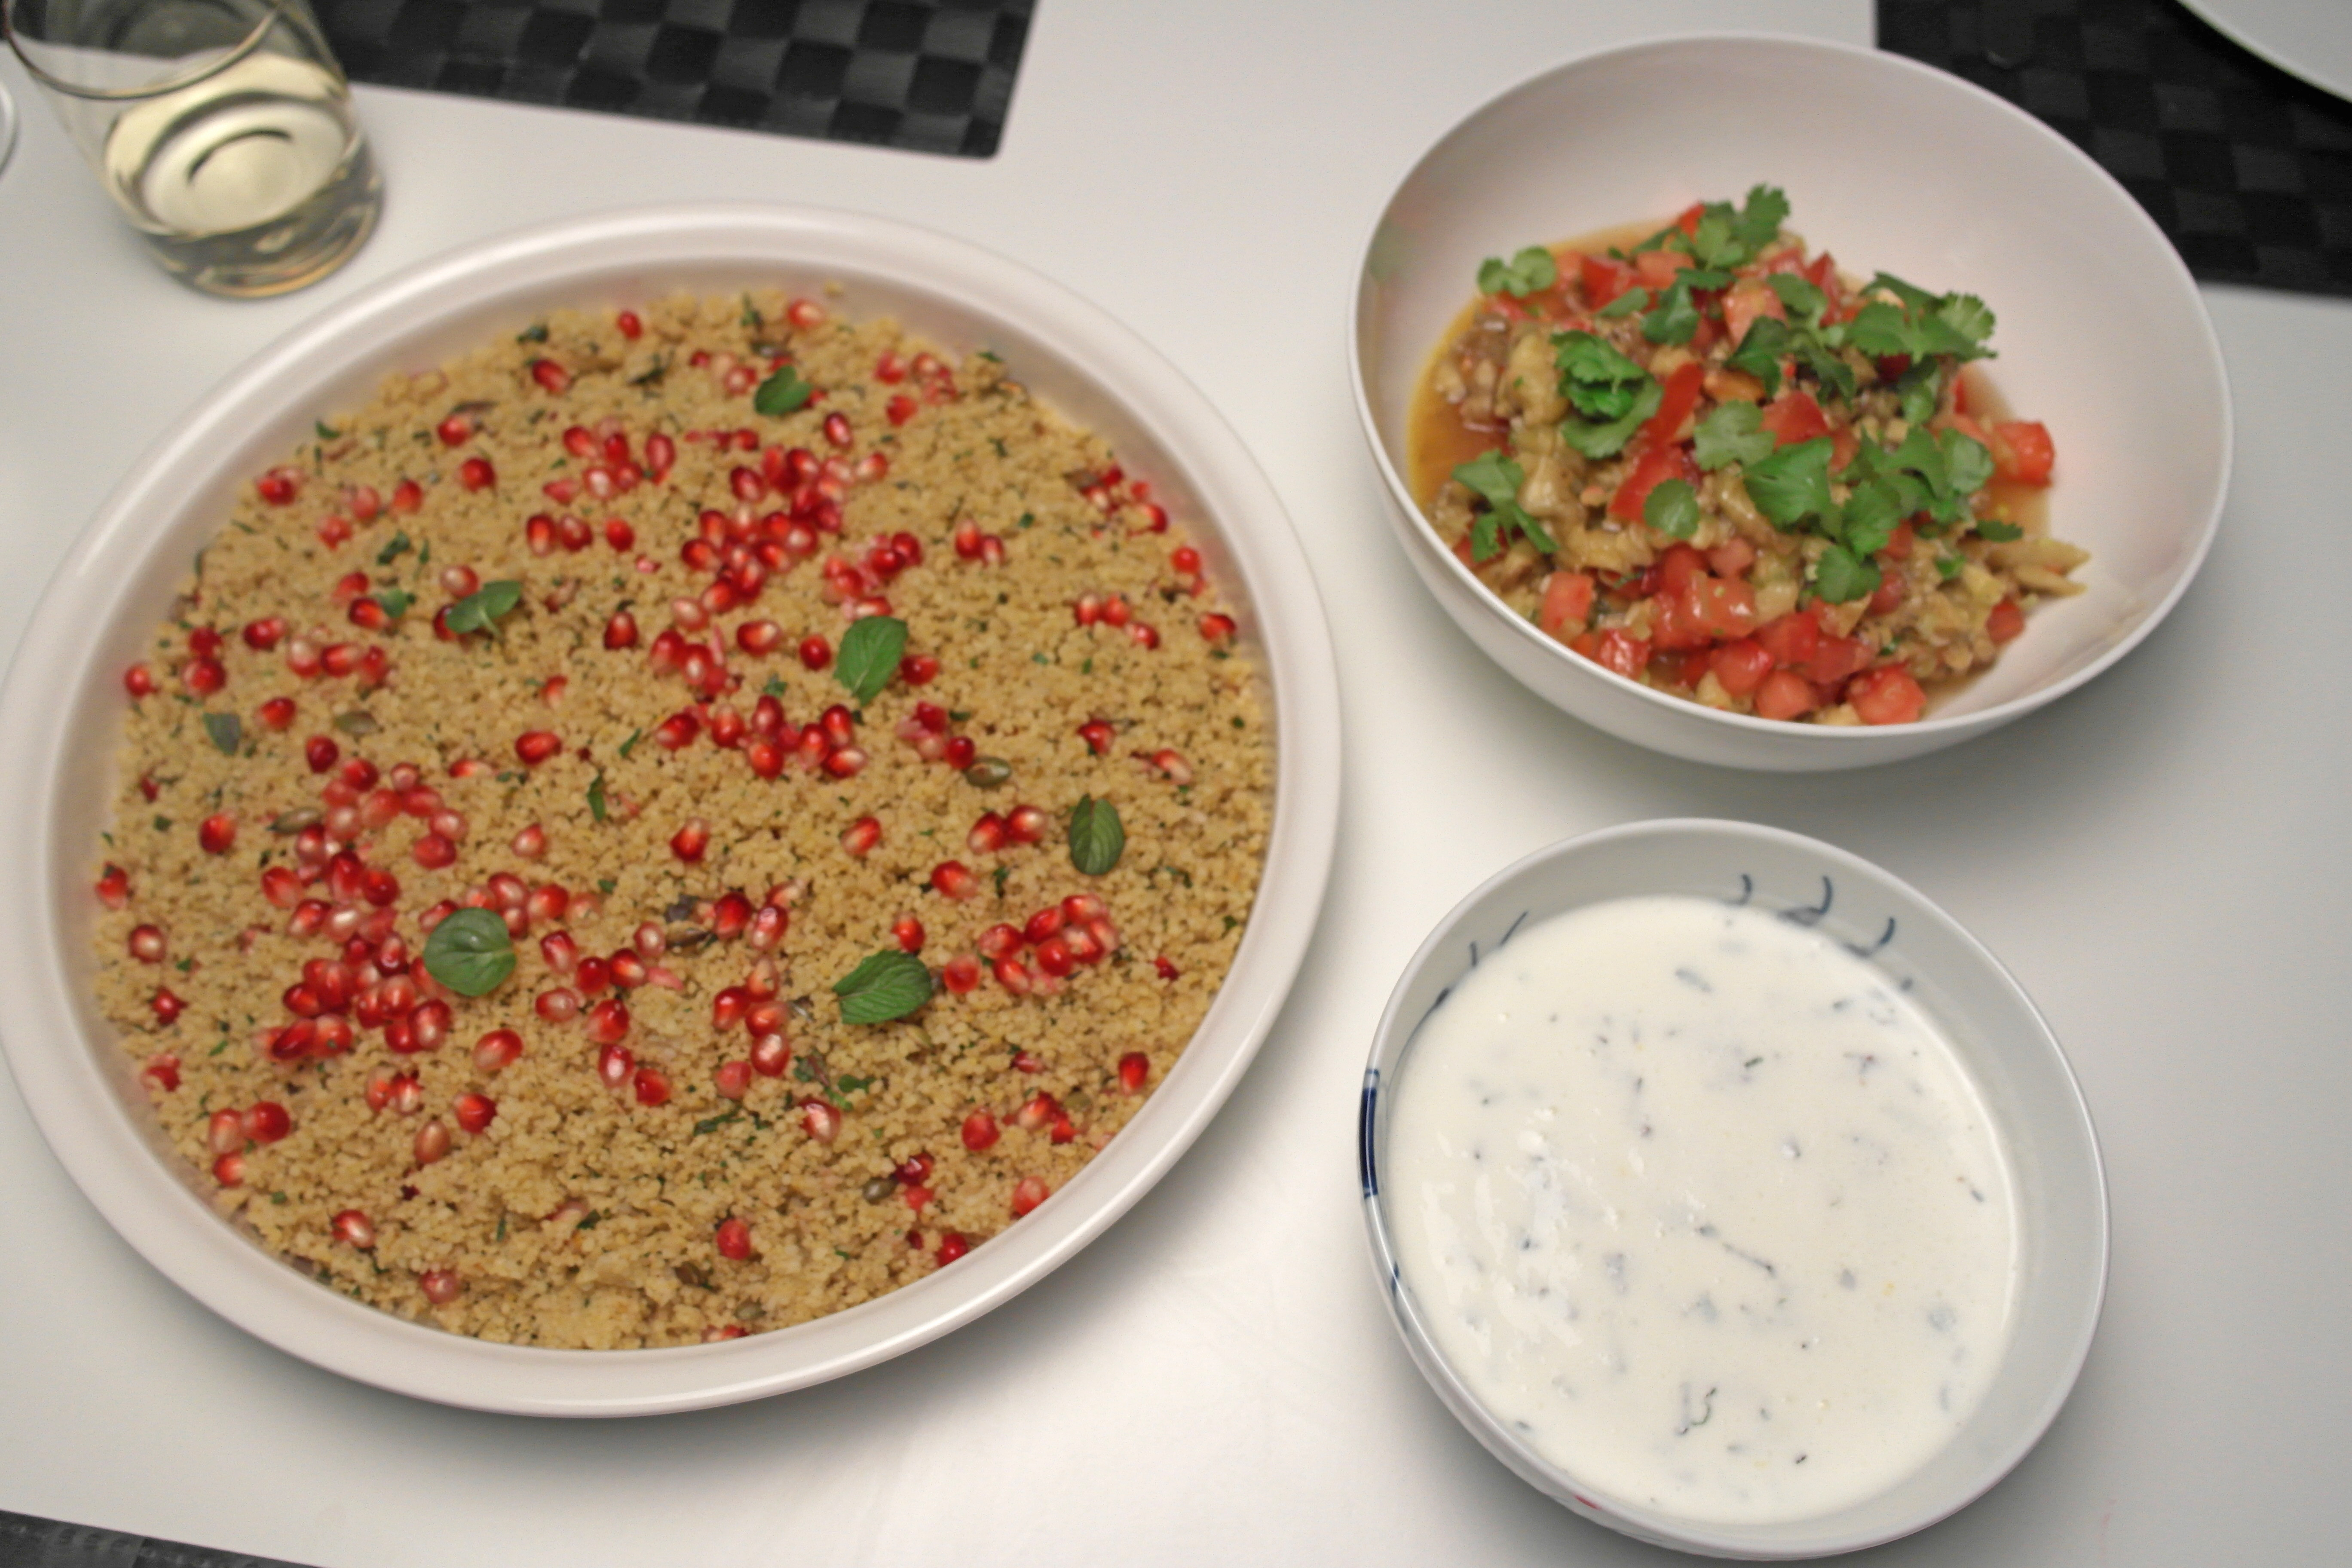 Couscous salad with yoghurt-feta dressing (and tomato-eggplant salad)